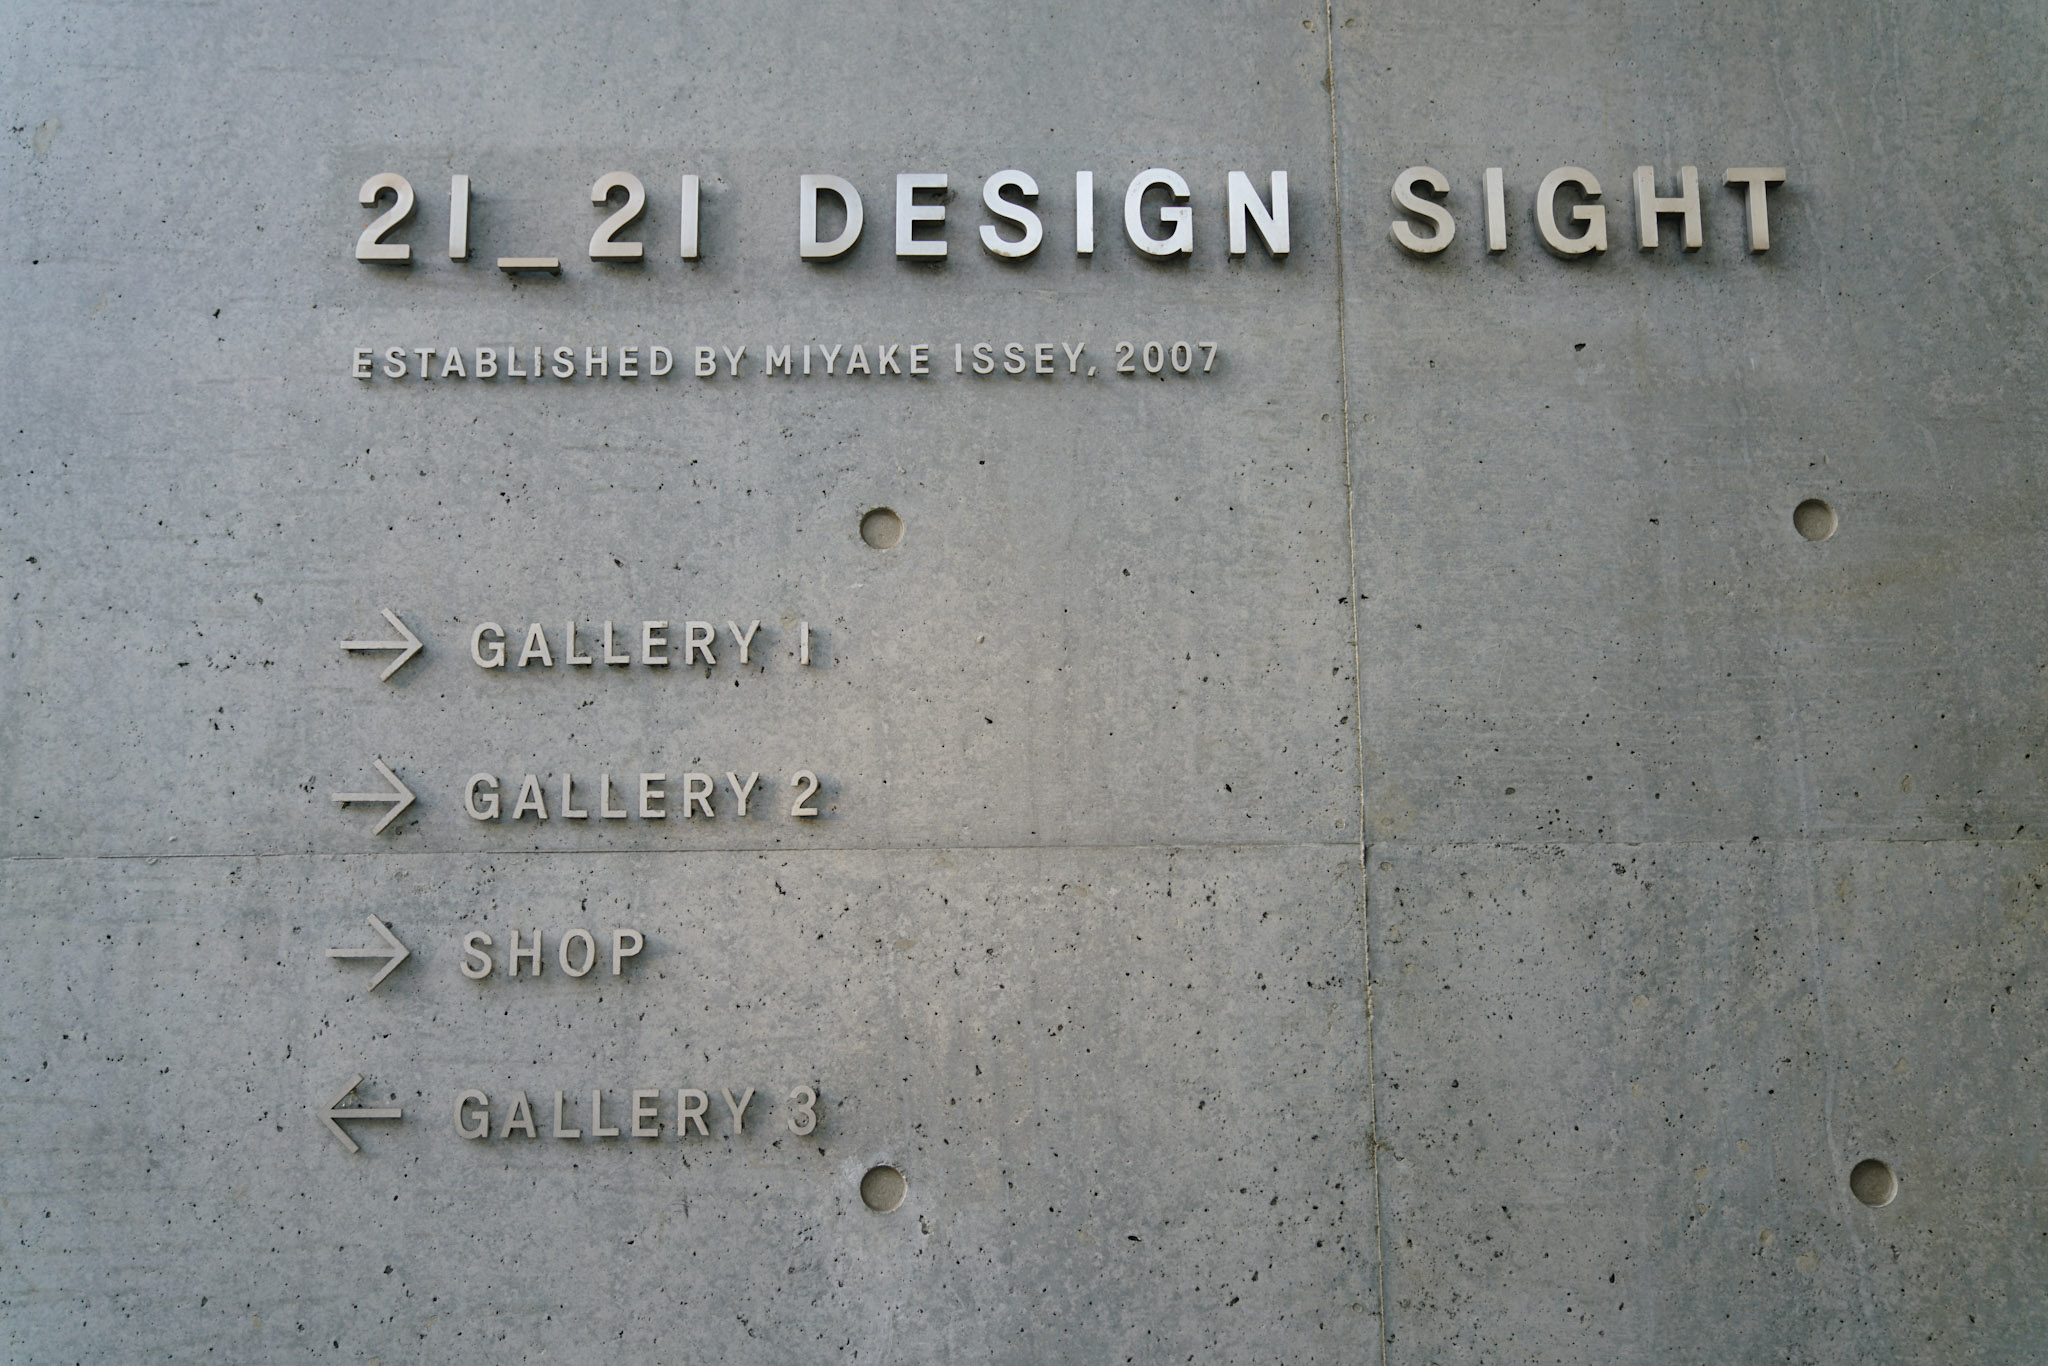 21_21 DESIGN SIGHT